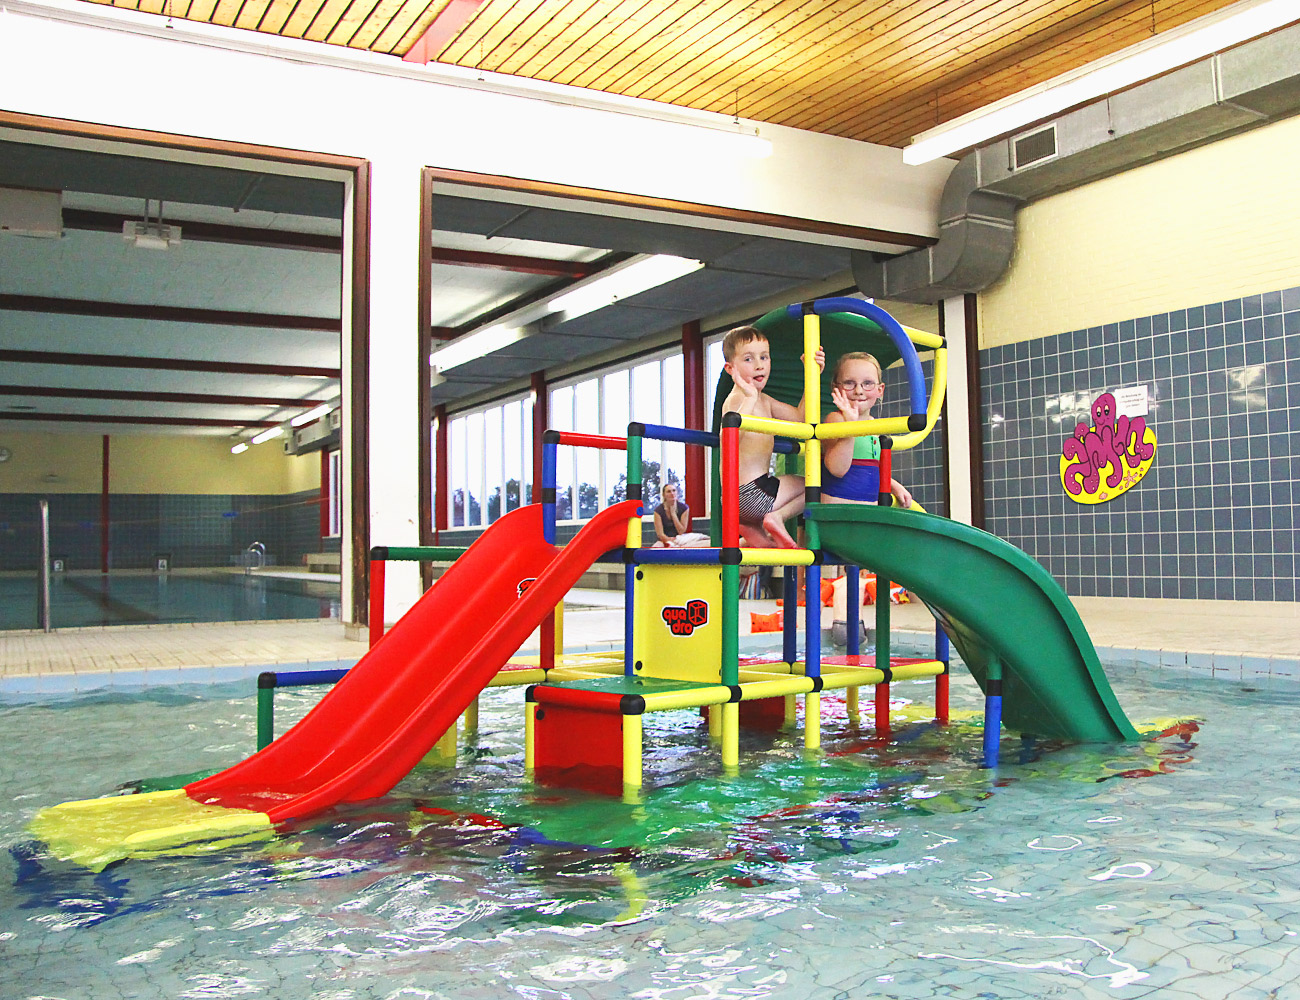 QUADROaqua lets kids have fun at the pool